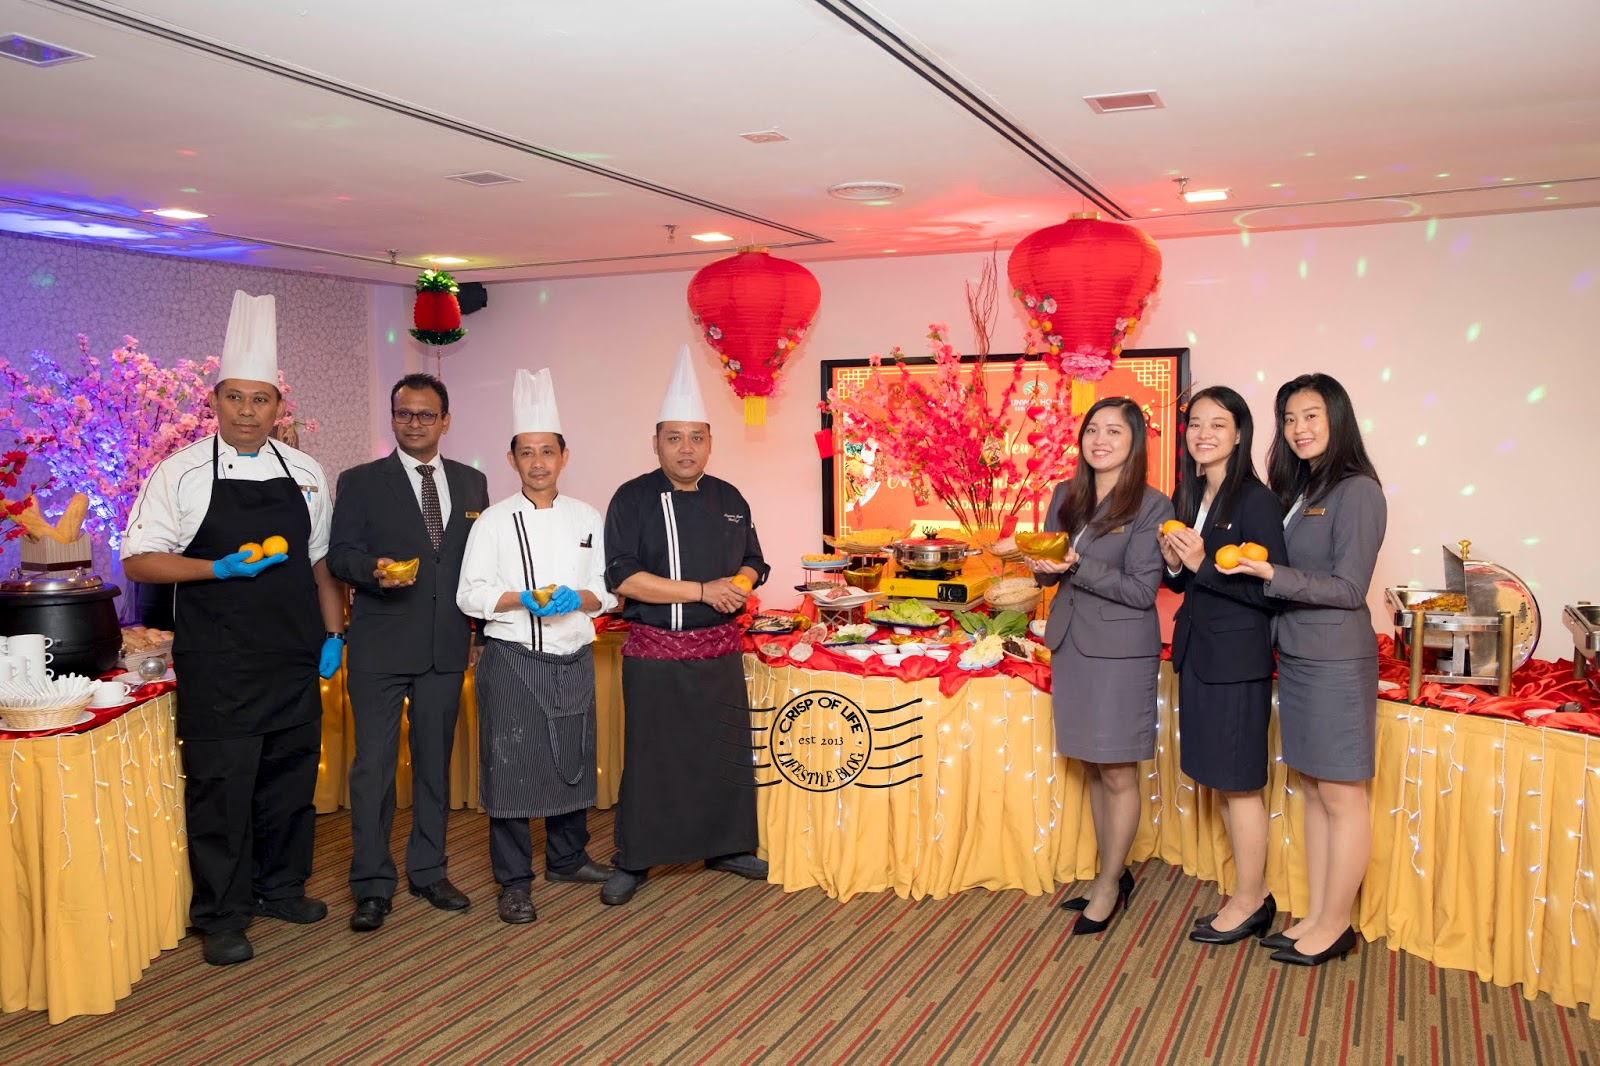 Chinese New Year 2019 Dinner Promotion by Sunway Hotel Georgetown and Sunway Hotel Seberang Jaya